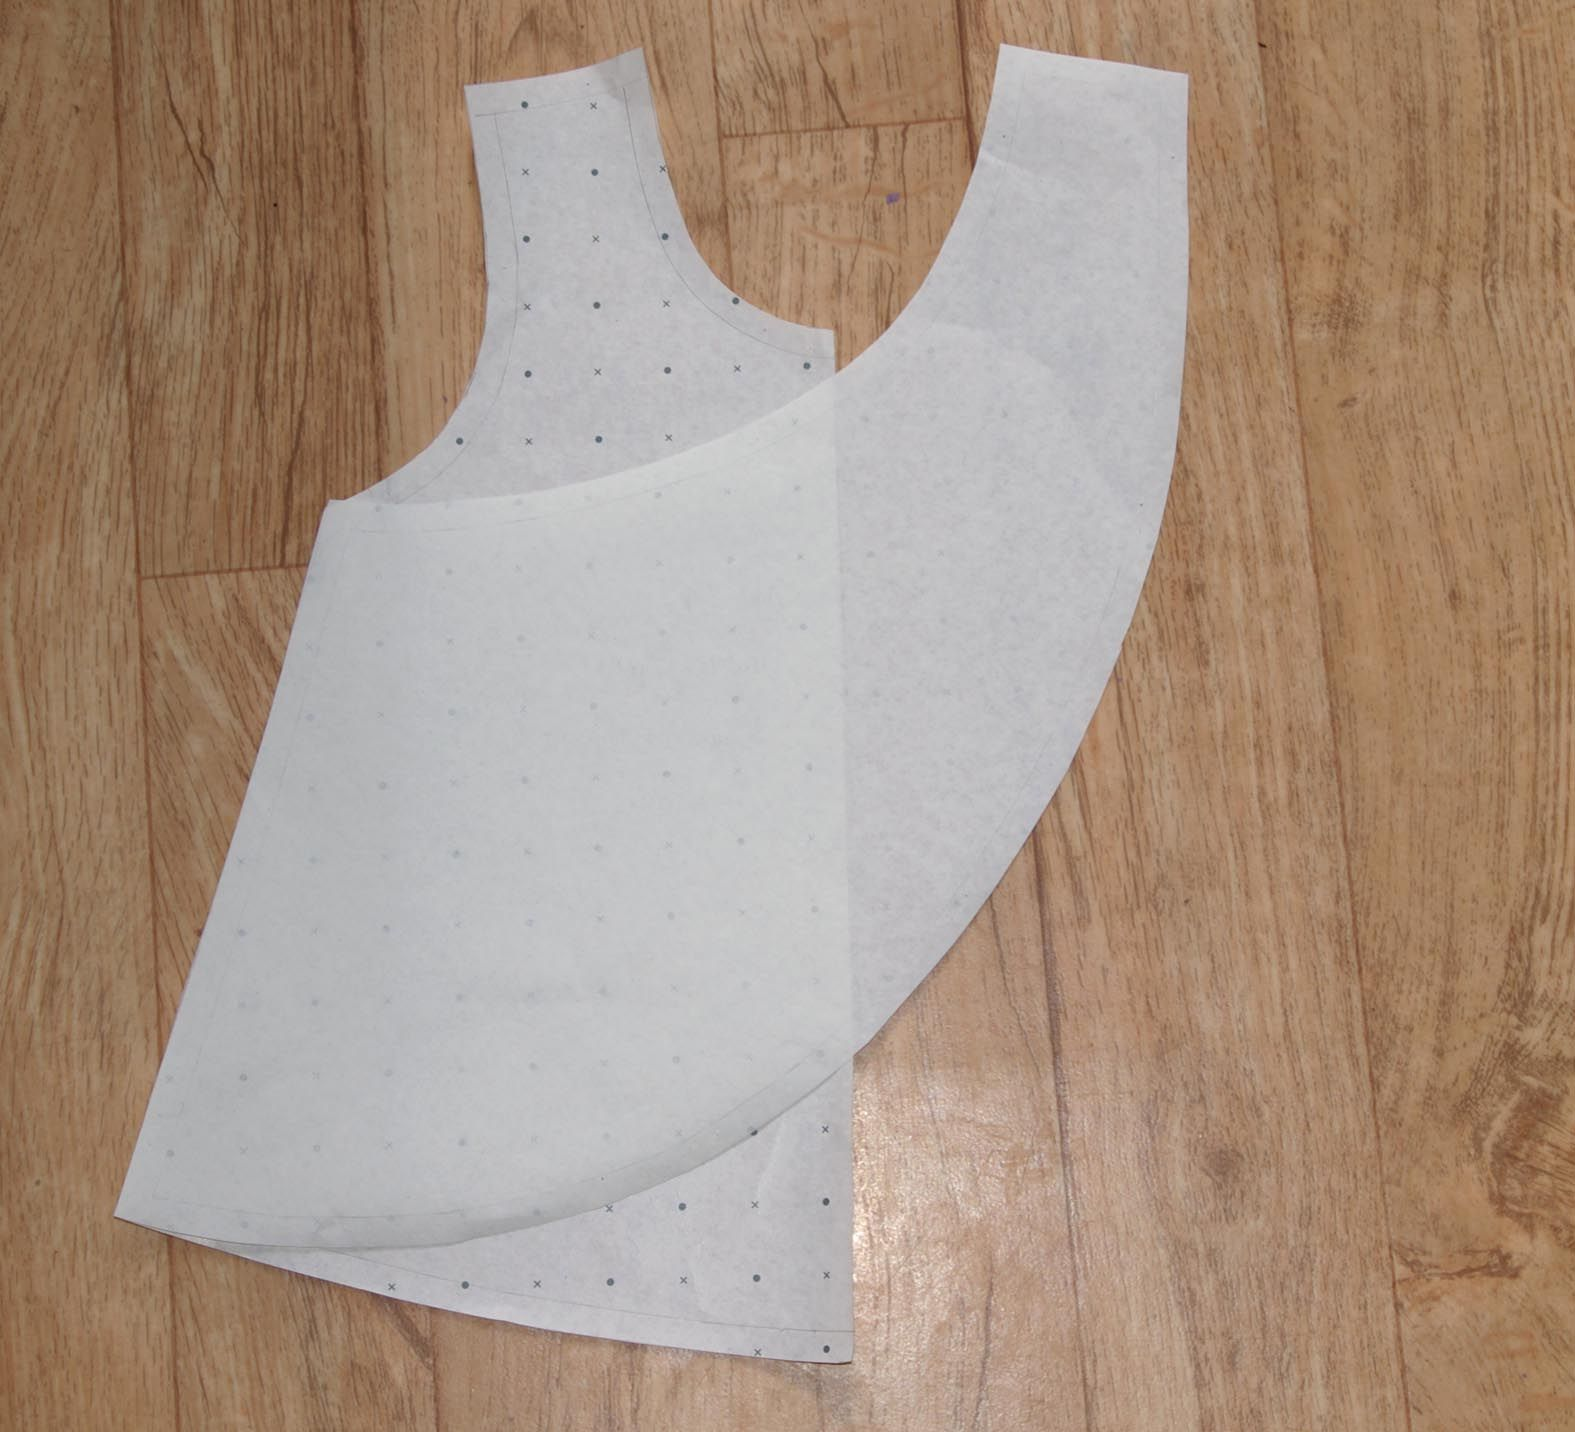 cross back apron patterns - Google Search | Sewing | Pinterest ...